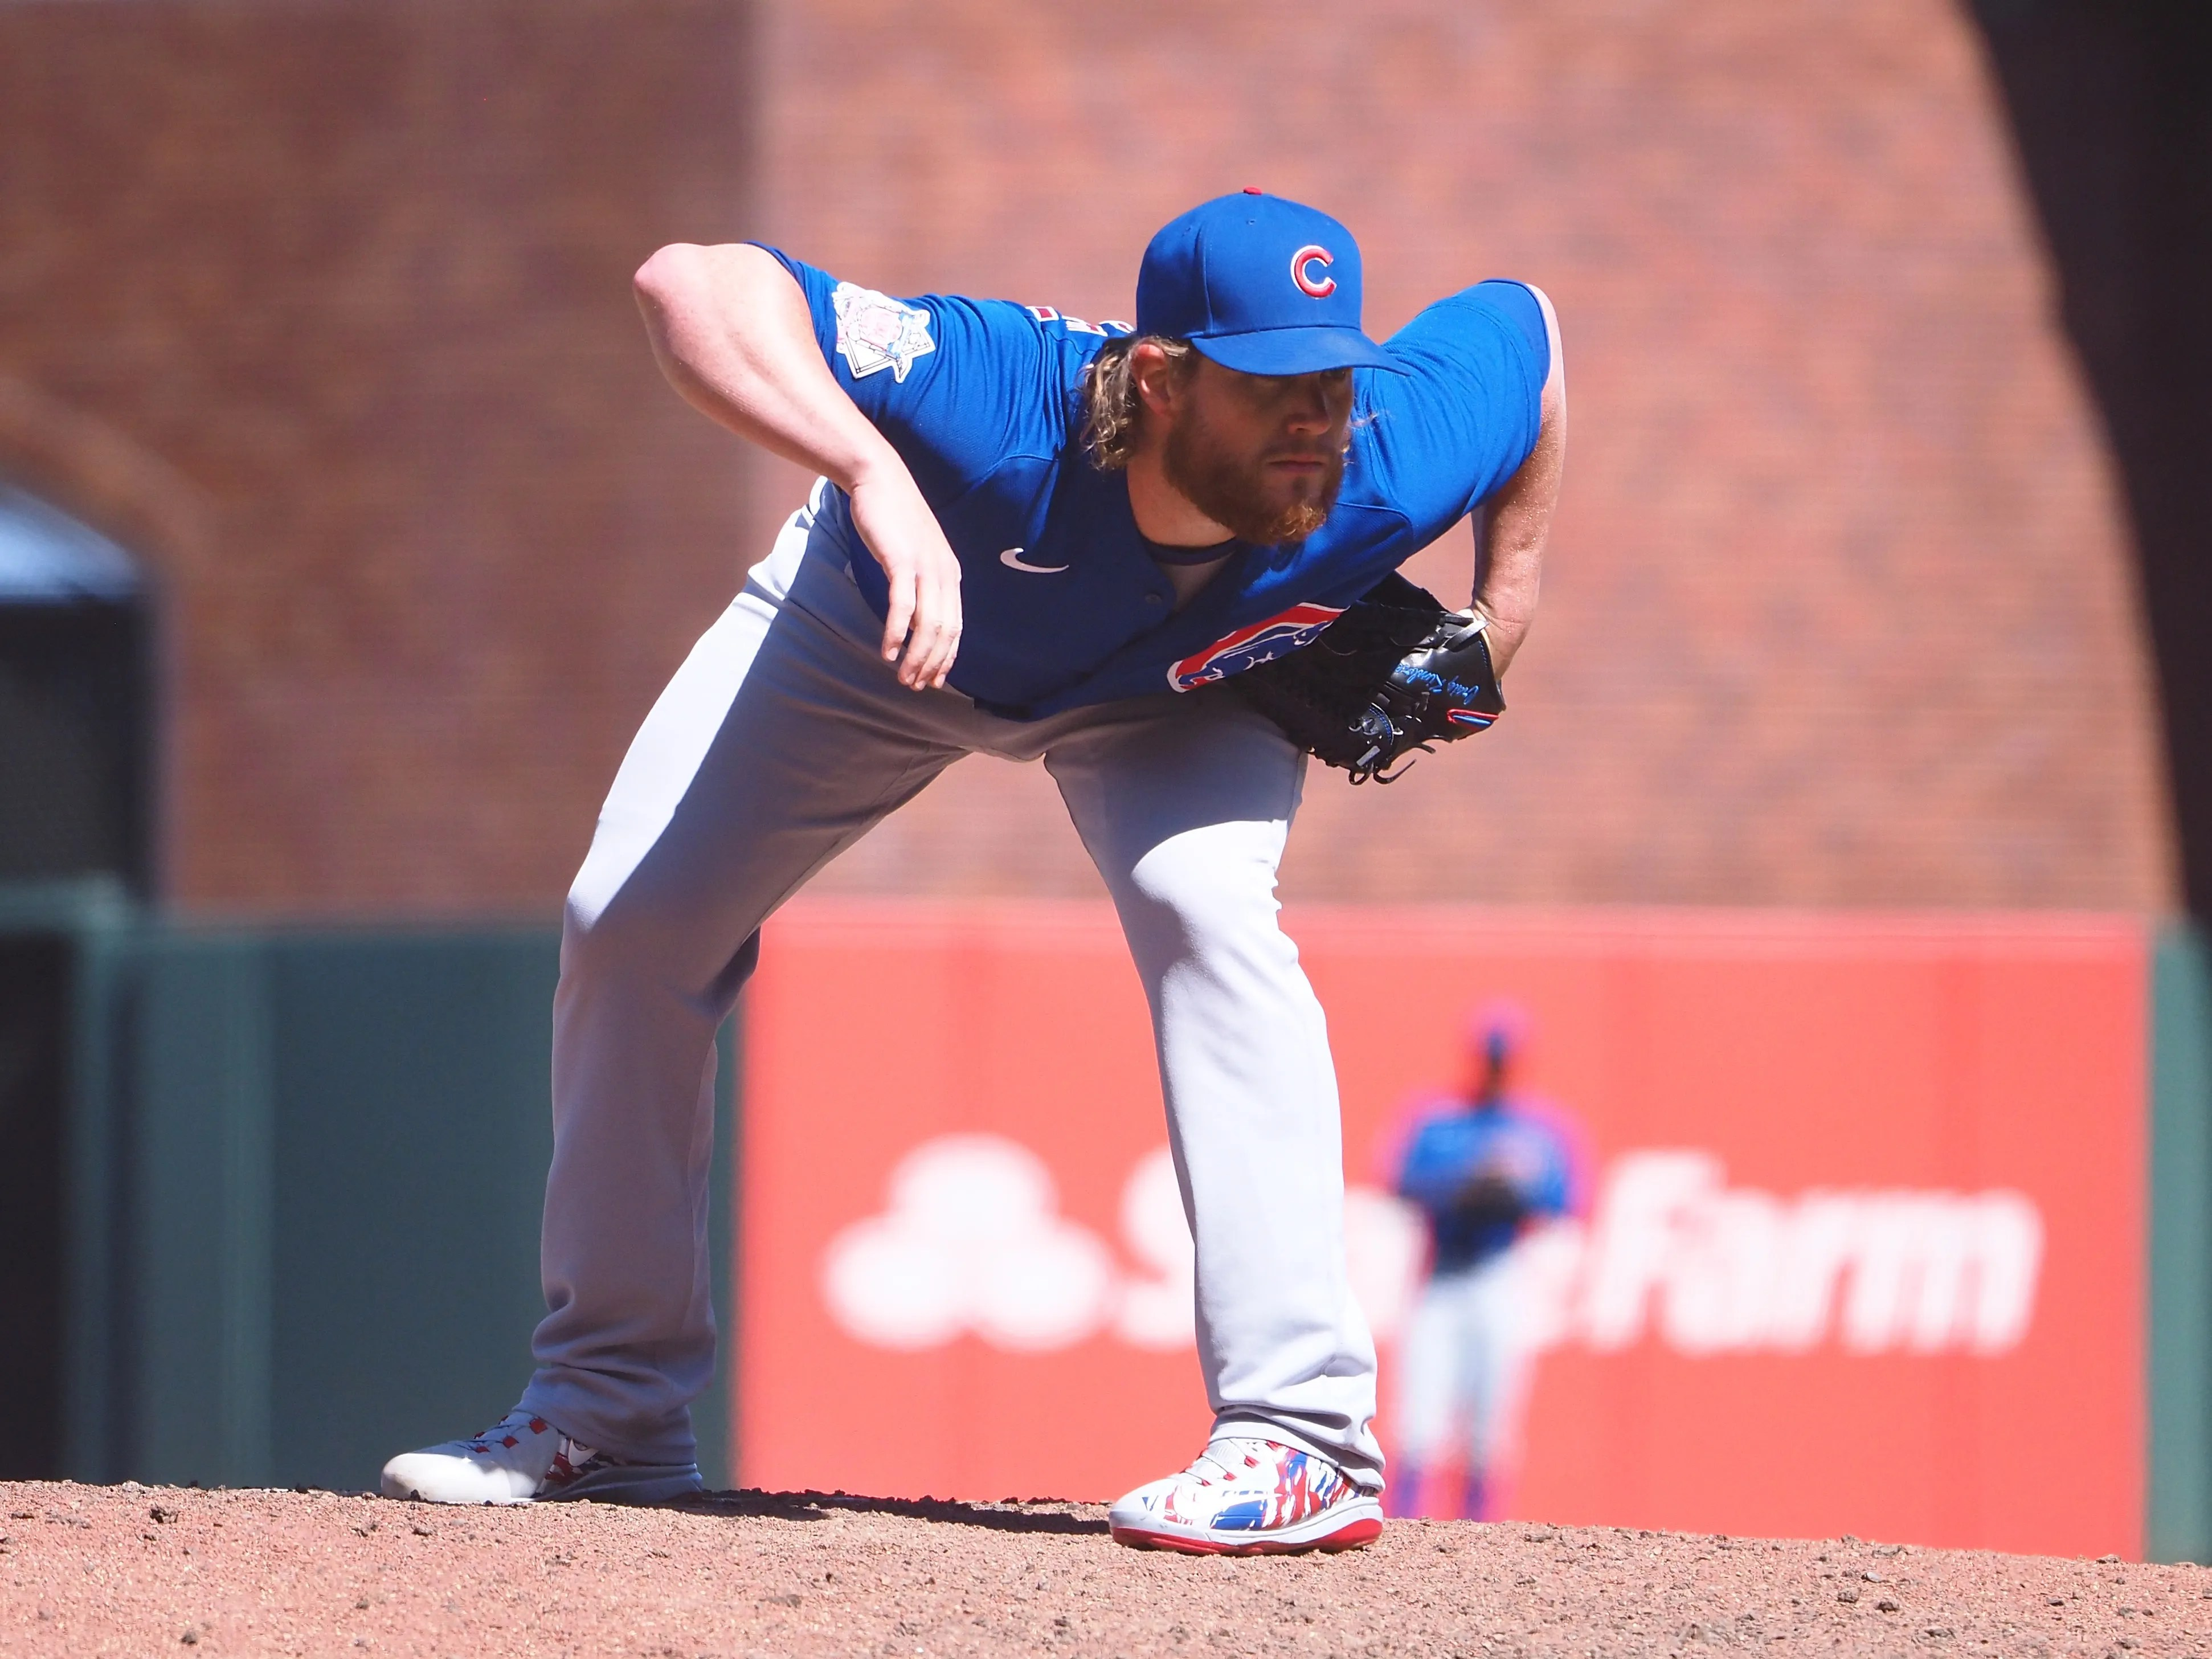 Craig Kimbrel is having his best season with the Cubs, with a 0.75 ERA.